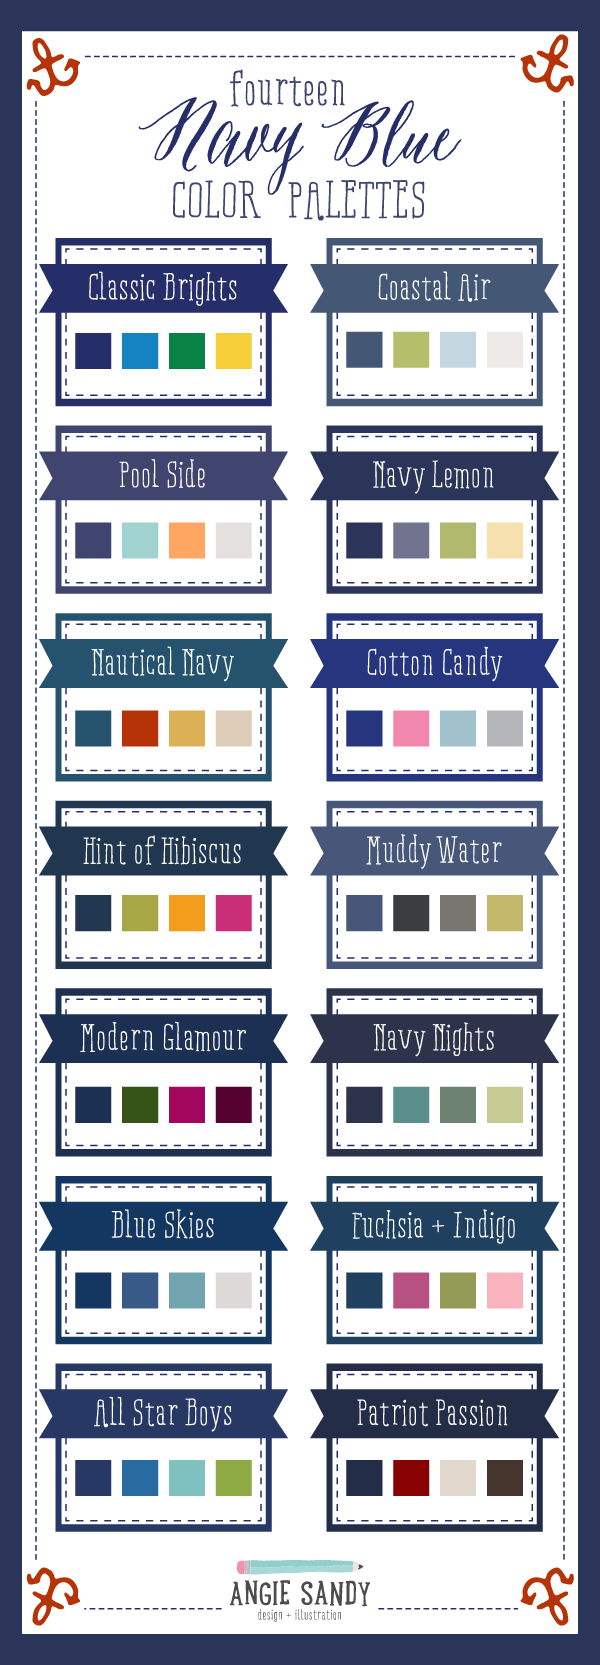 14 Navy Blue Color Palettes Angie Sandy Art Licensing Design